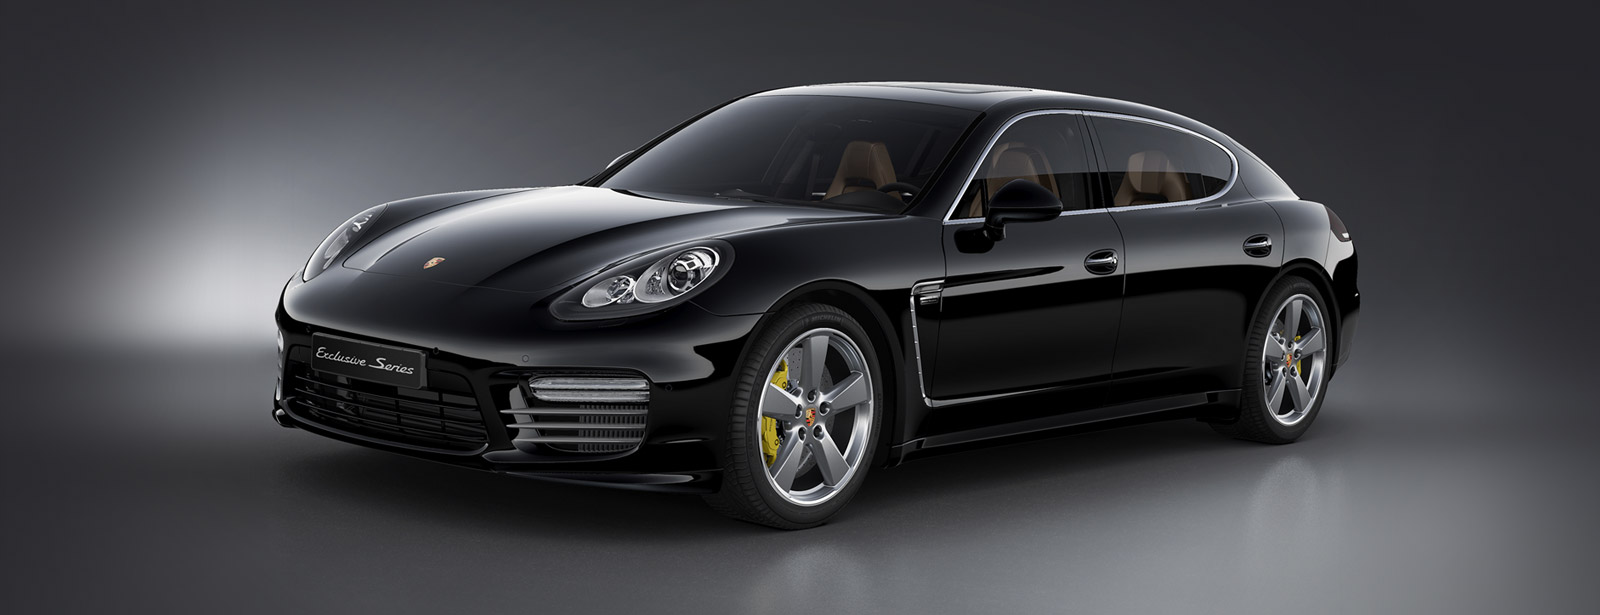 2015 porsche panamera exclusive series is 3 900 of amazing. Black Bedroom Furniture Sets. Home Design Ideas